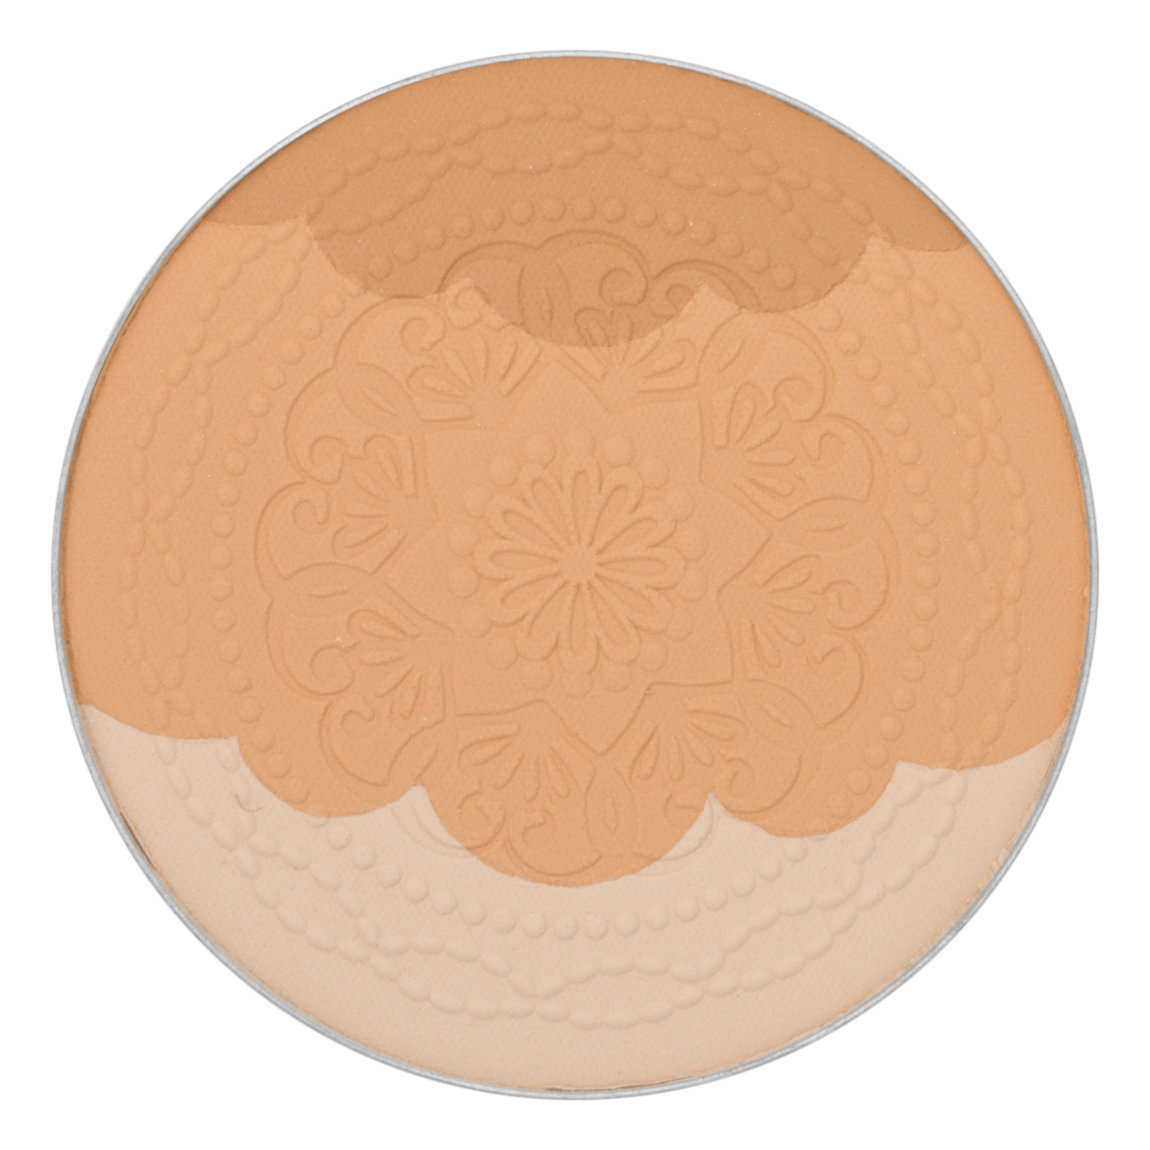 Anna Sui BB Pressed Powder (Refill) 02 product swatch.